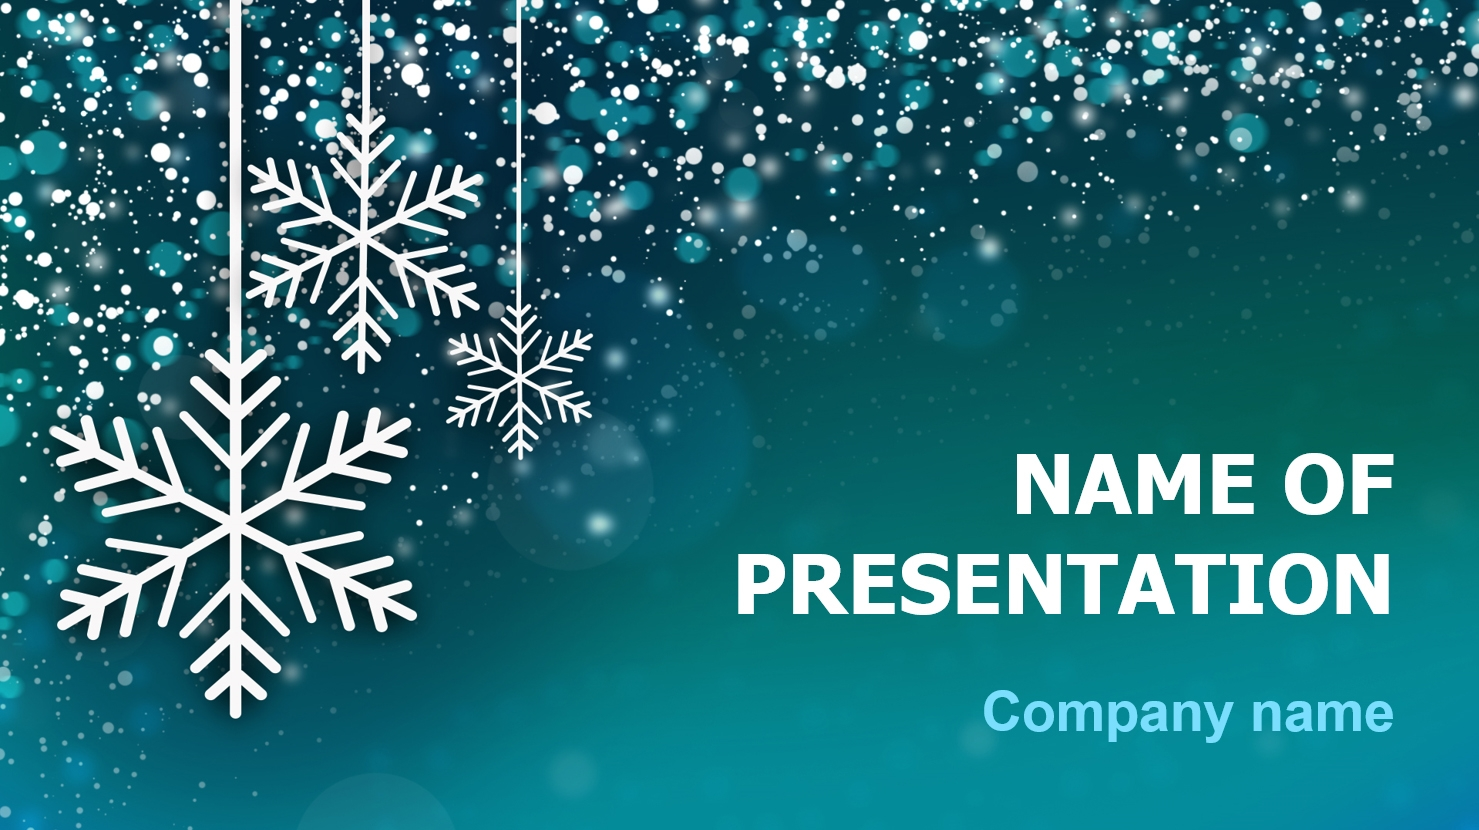 Free Winter Powerpoint Template Background For Presentation Free